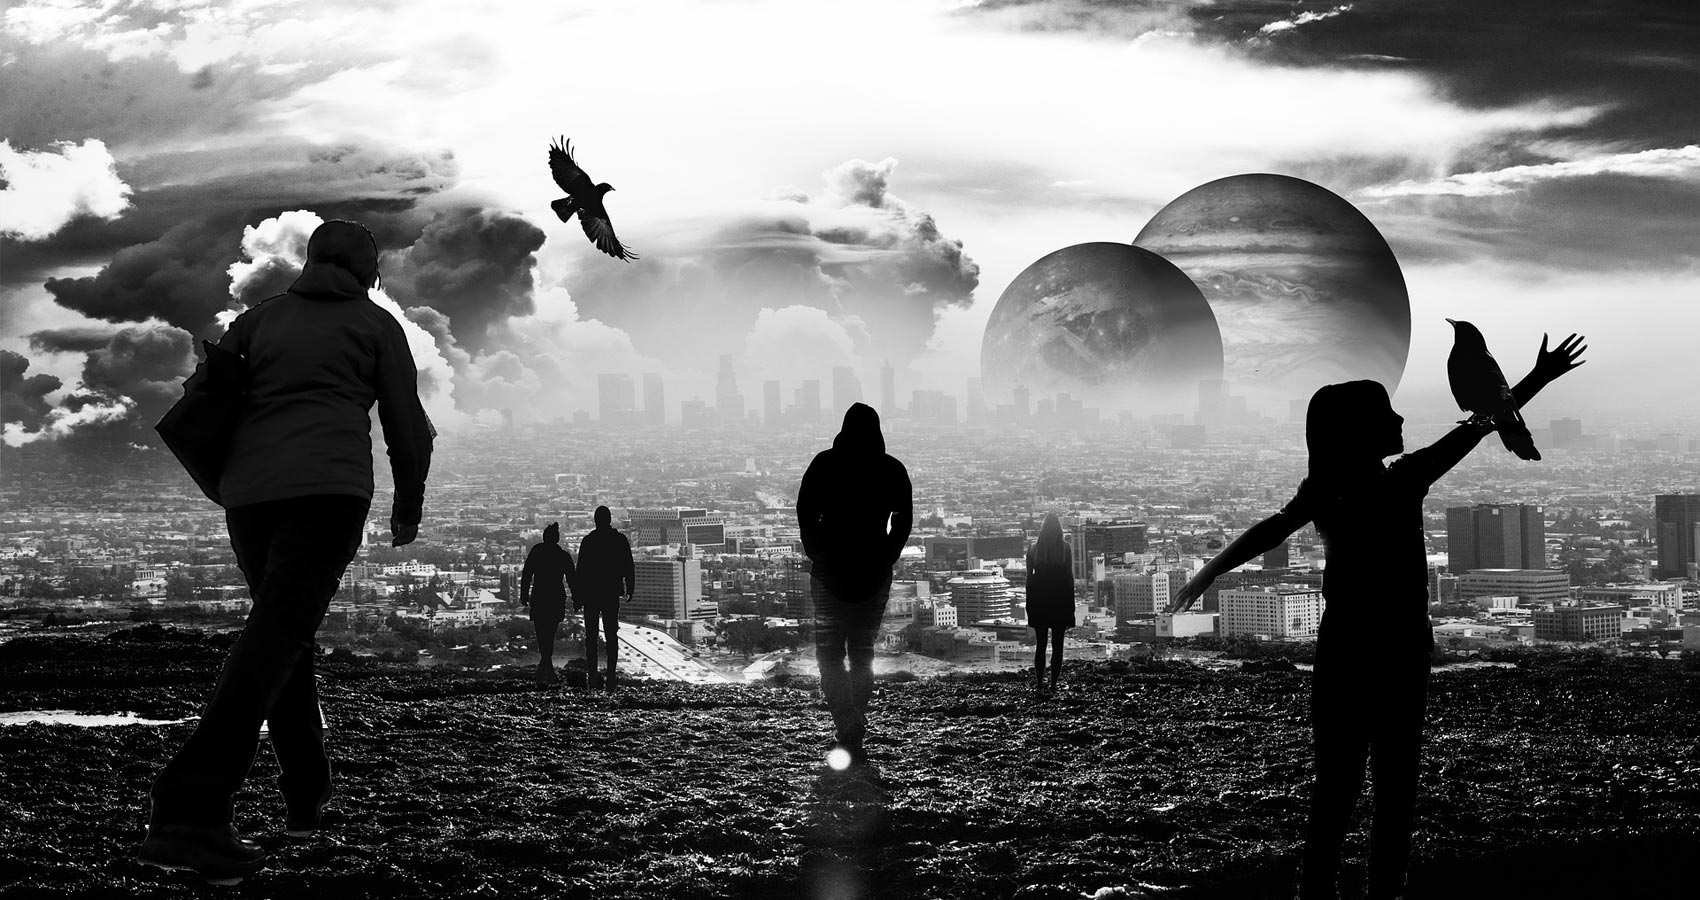 Planetary Divergents, a poem by Maid Corbic at Spillwords.com